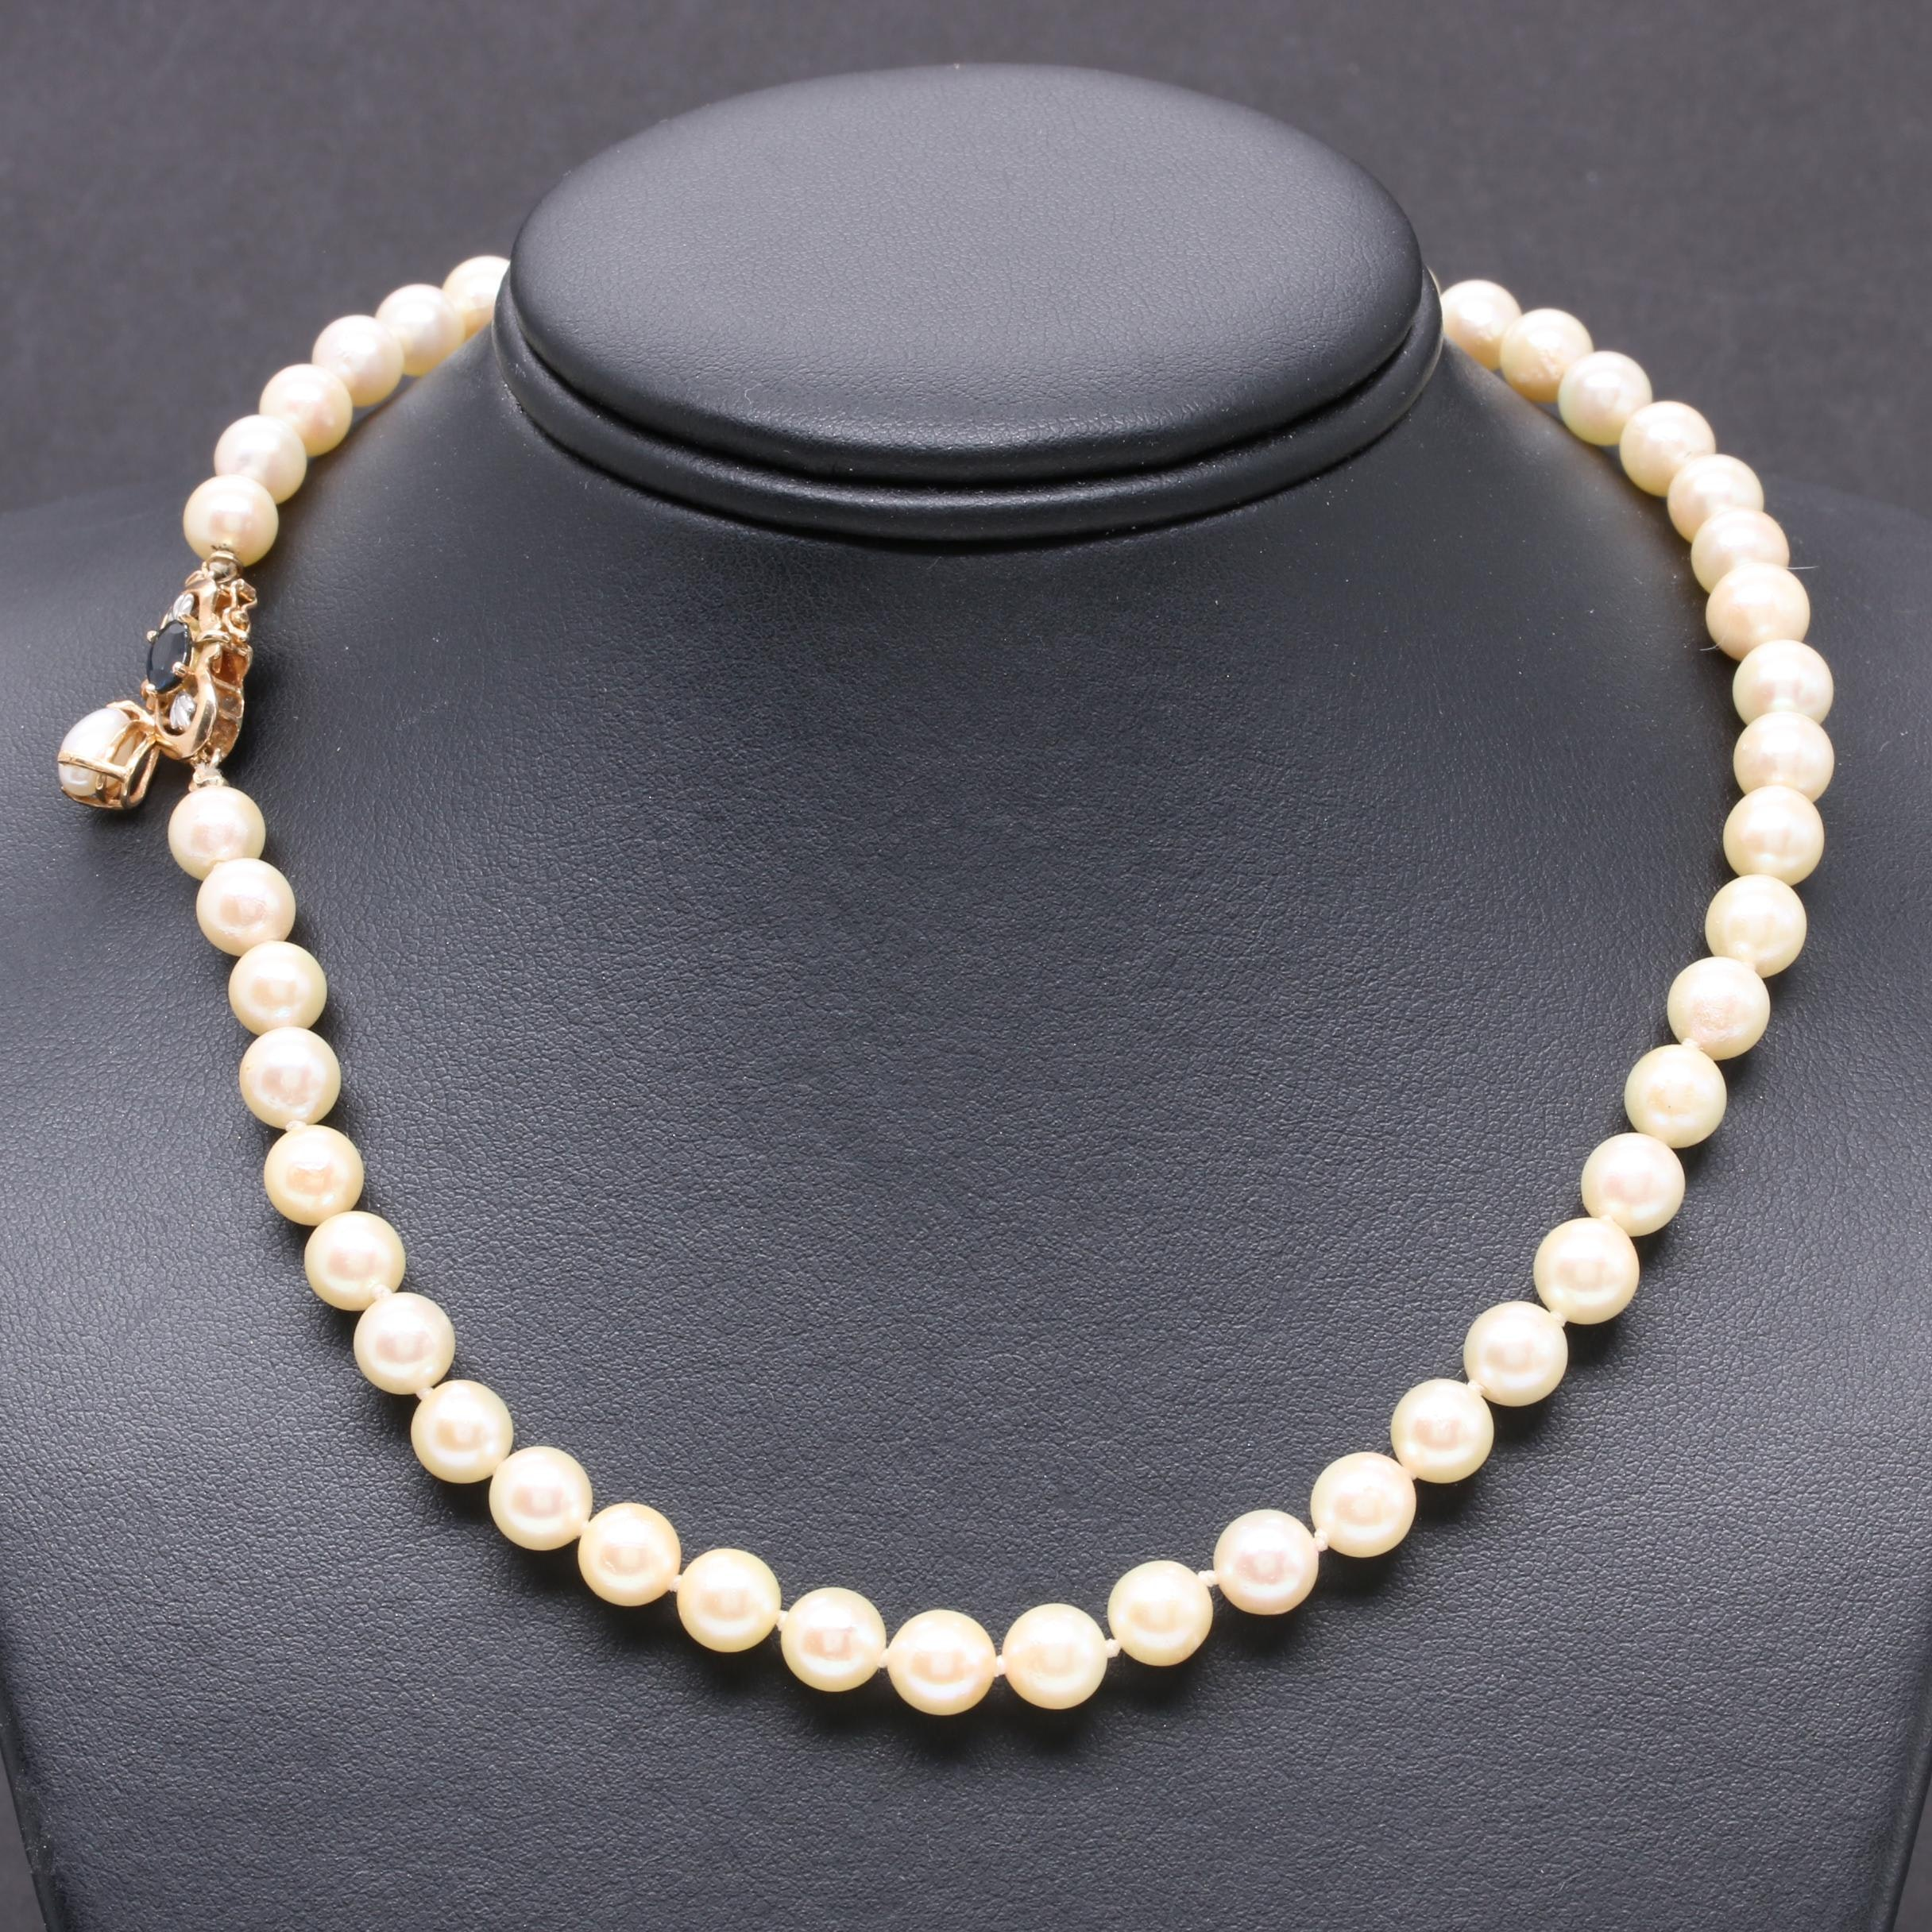 14K Yellow Gold Sapphire and Cultured Pearl Necklace